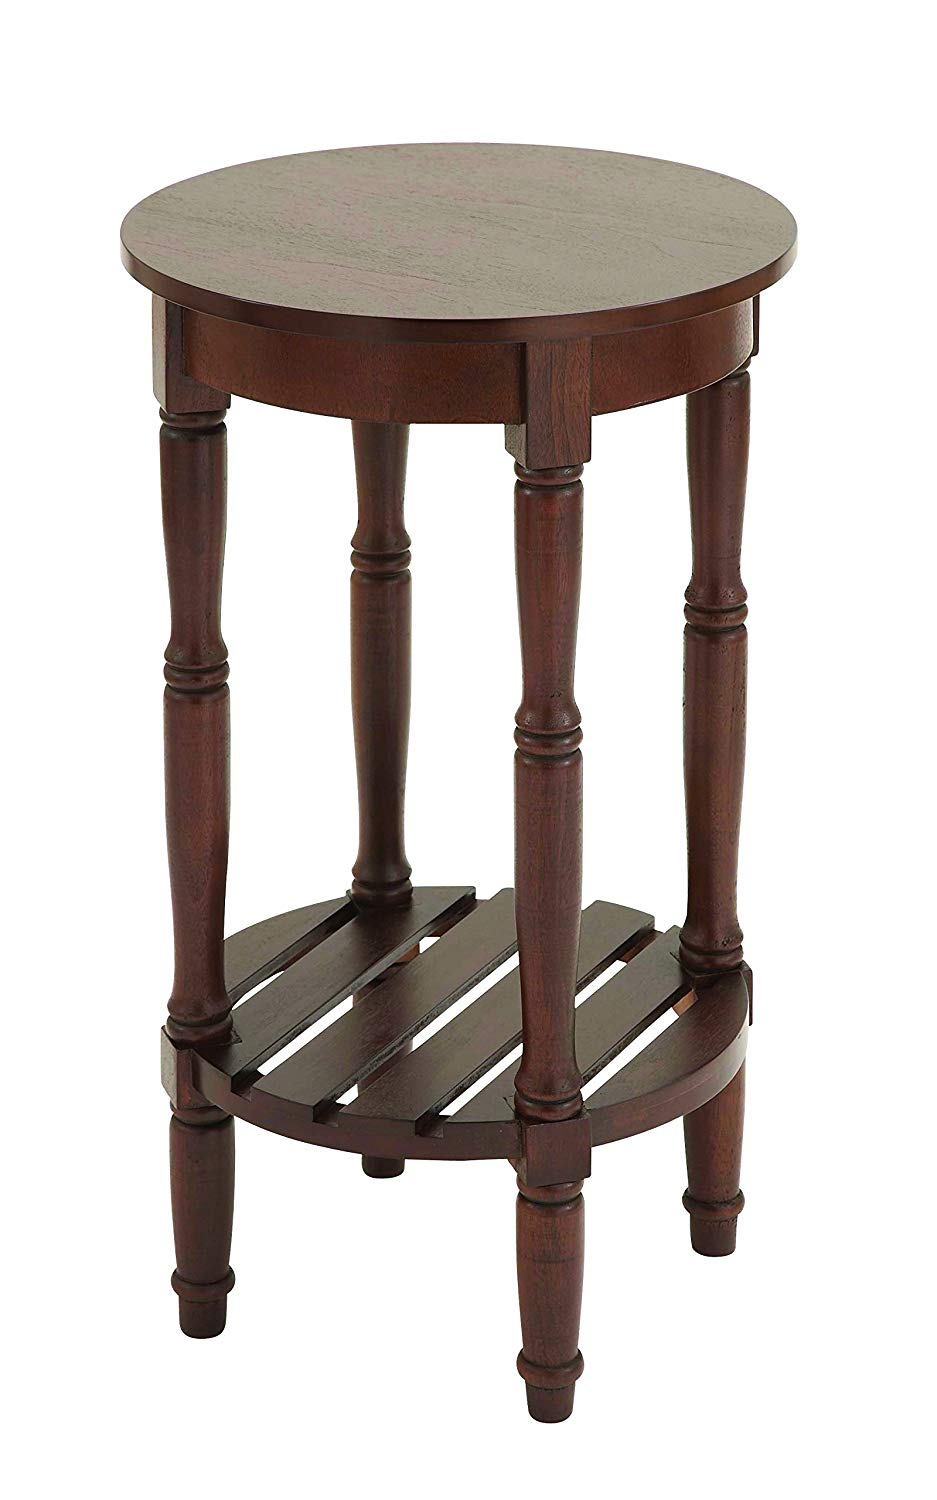 benzara wood round side table inch light pine end tables green kitchen dining value city furniture clearance living spaces sectionals wooden design build coffee pipe grey ashley